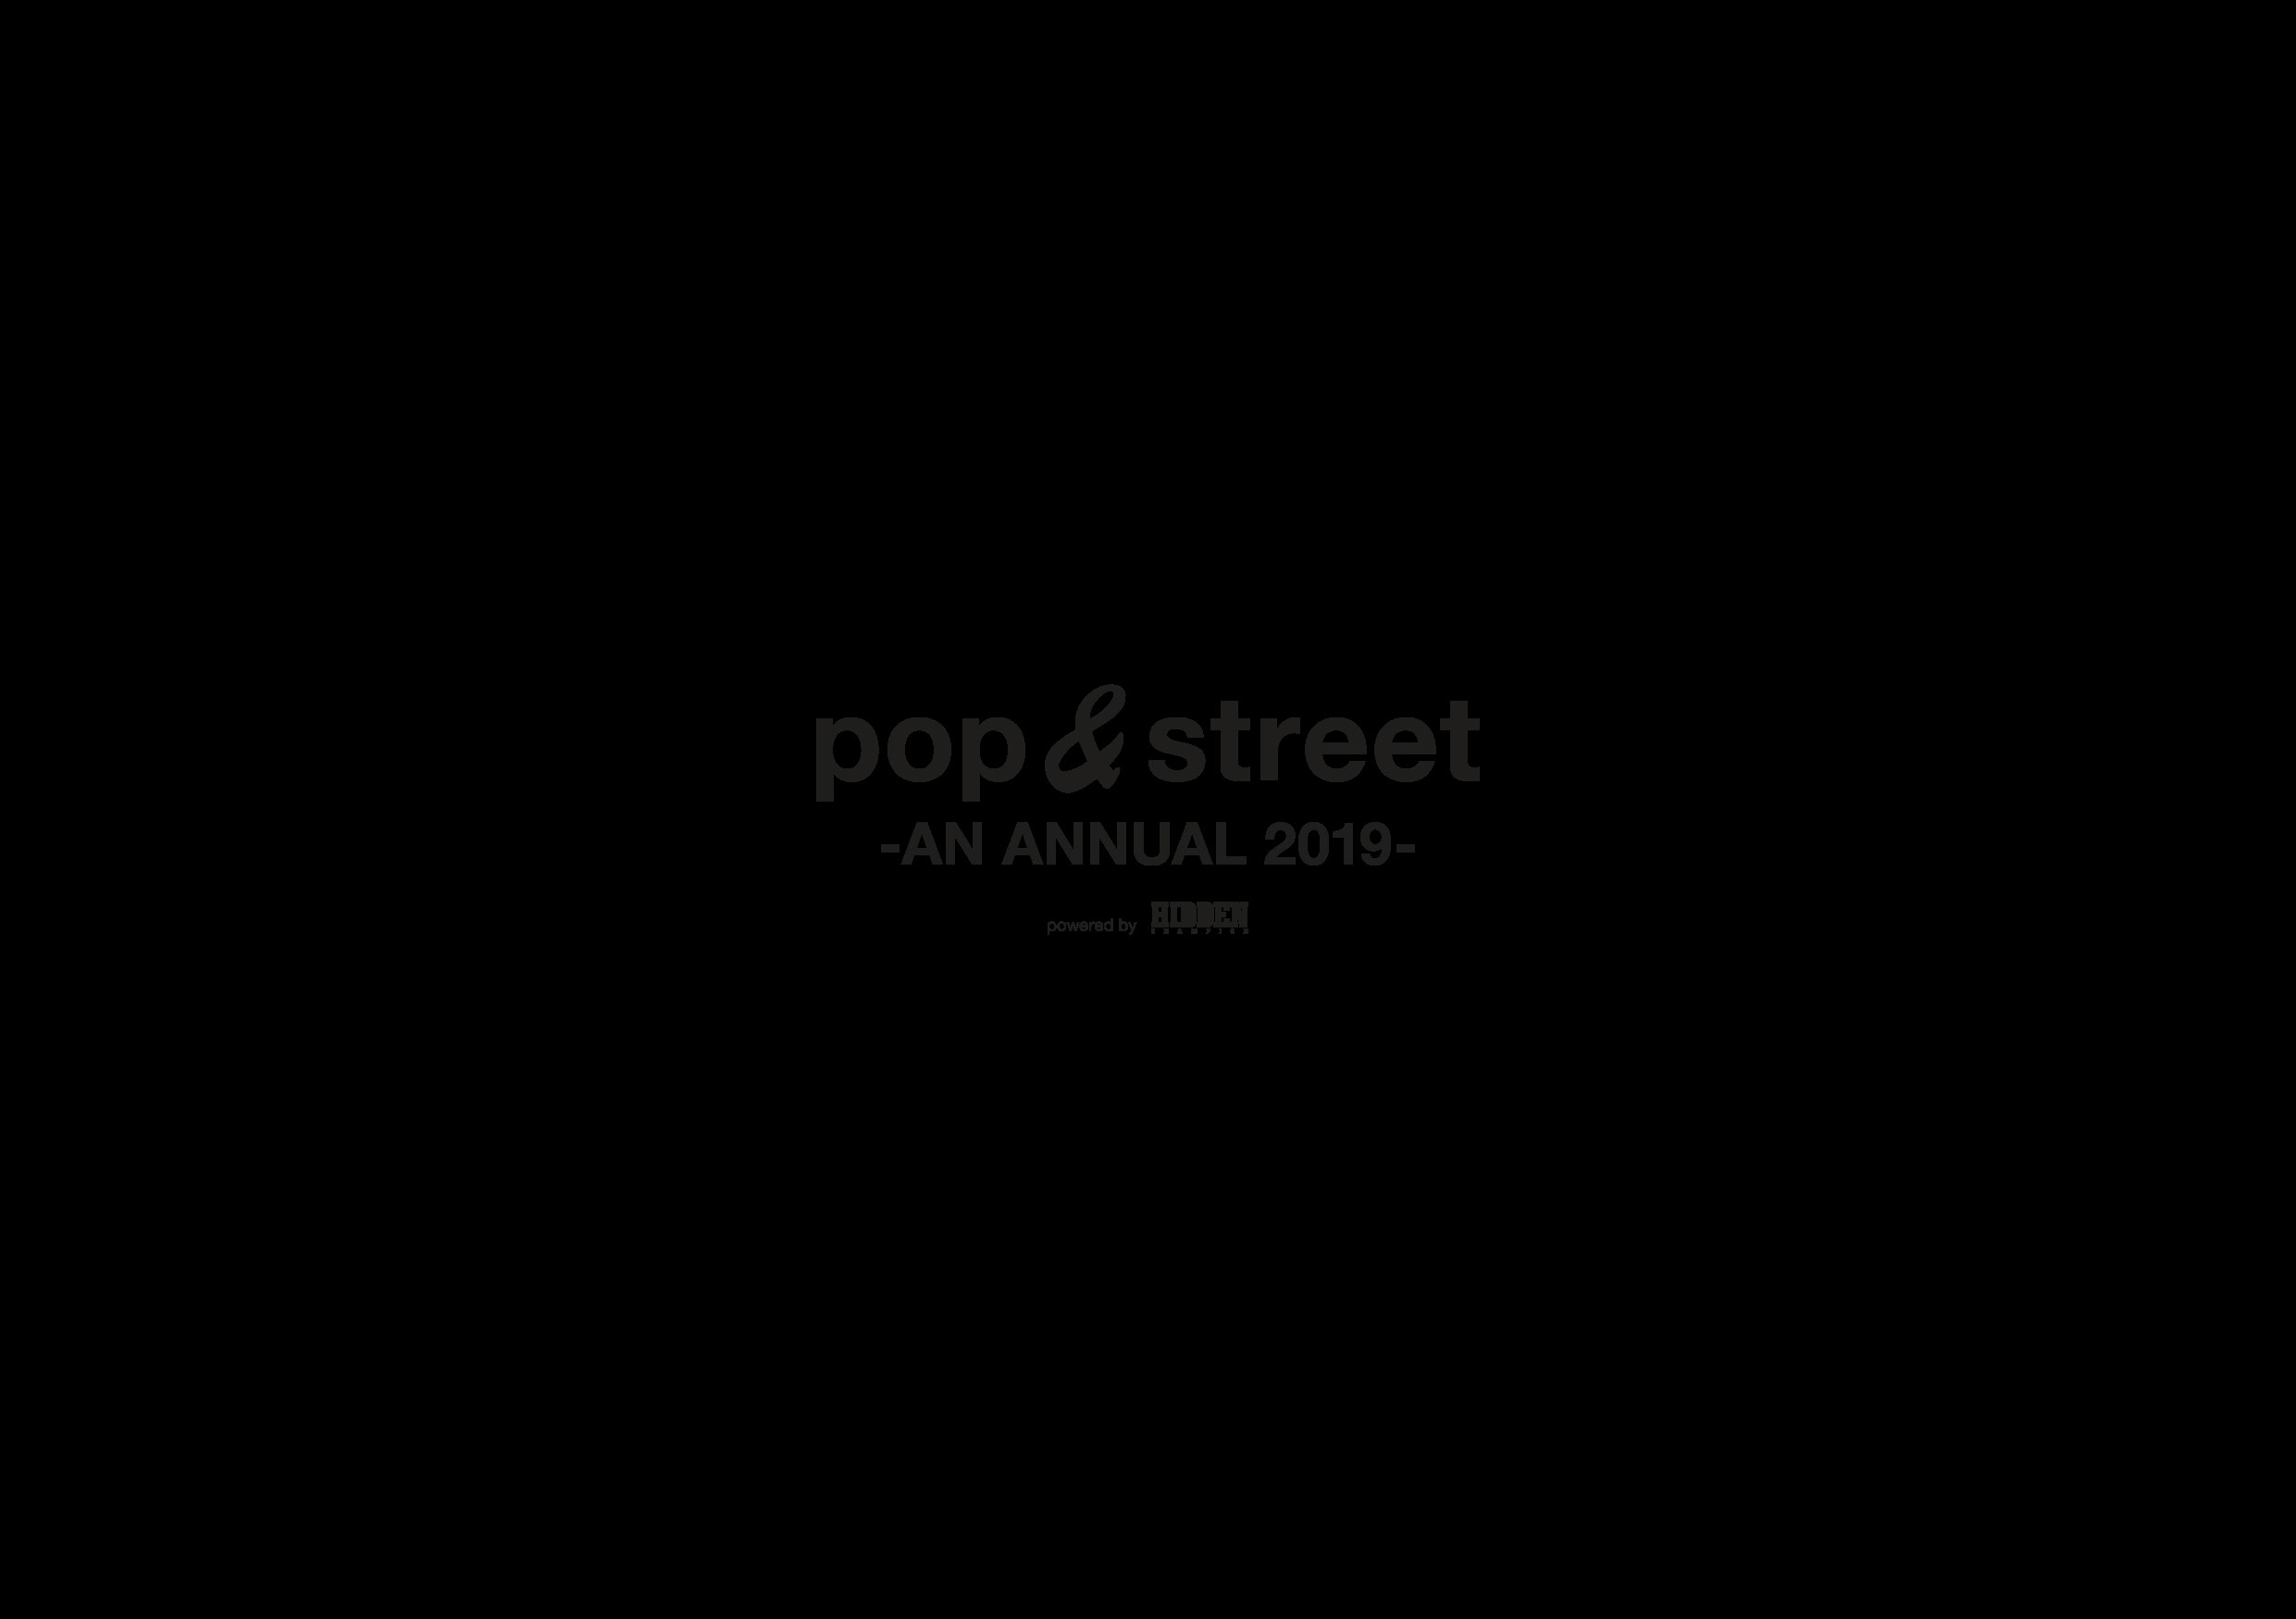 pop&street -AN ANNUAL 2019